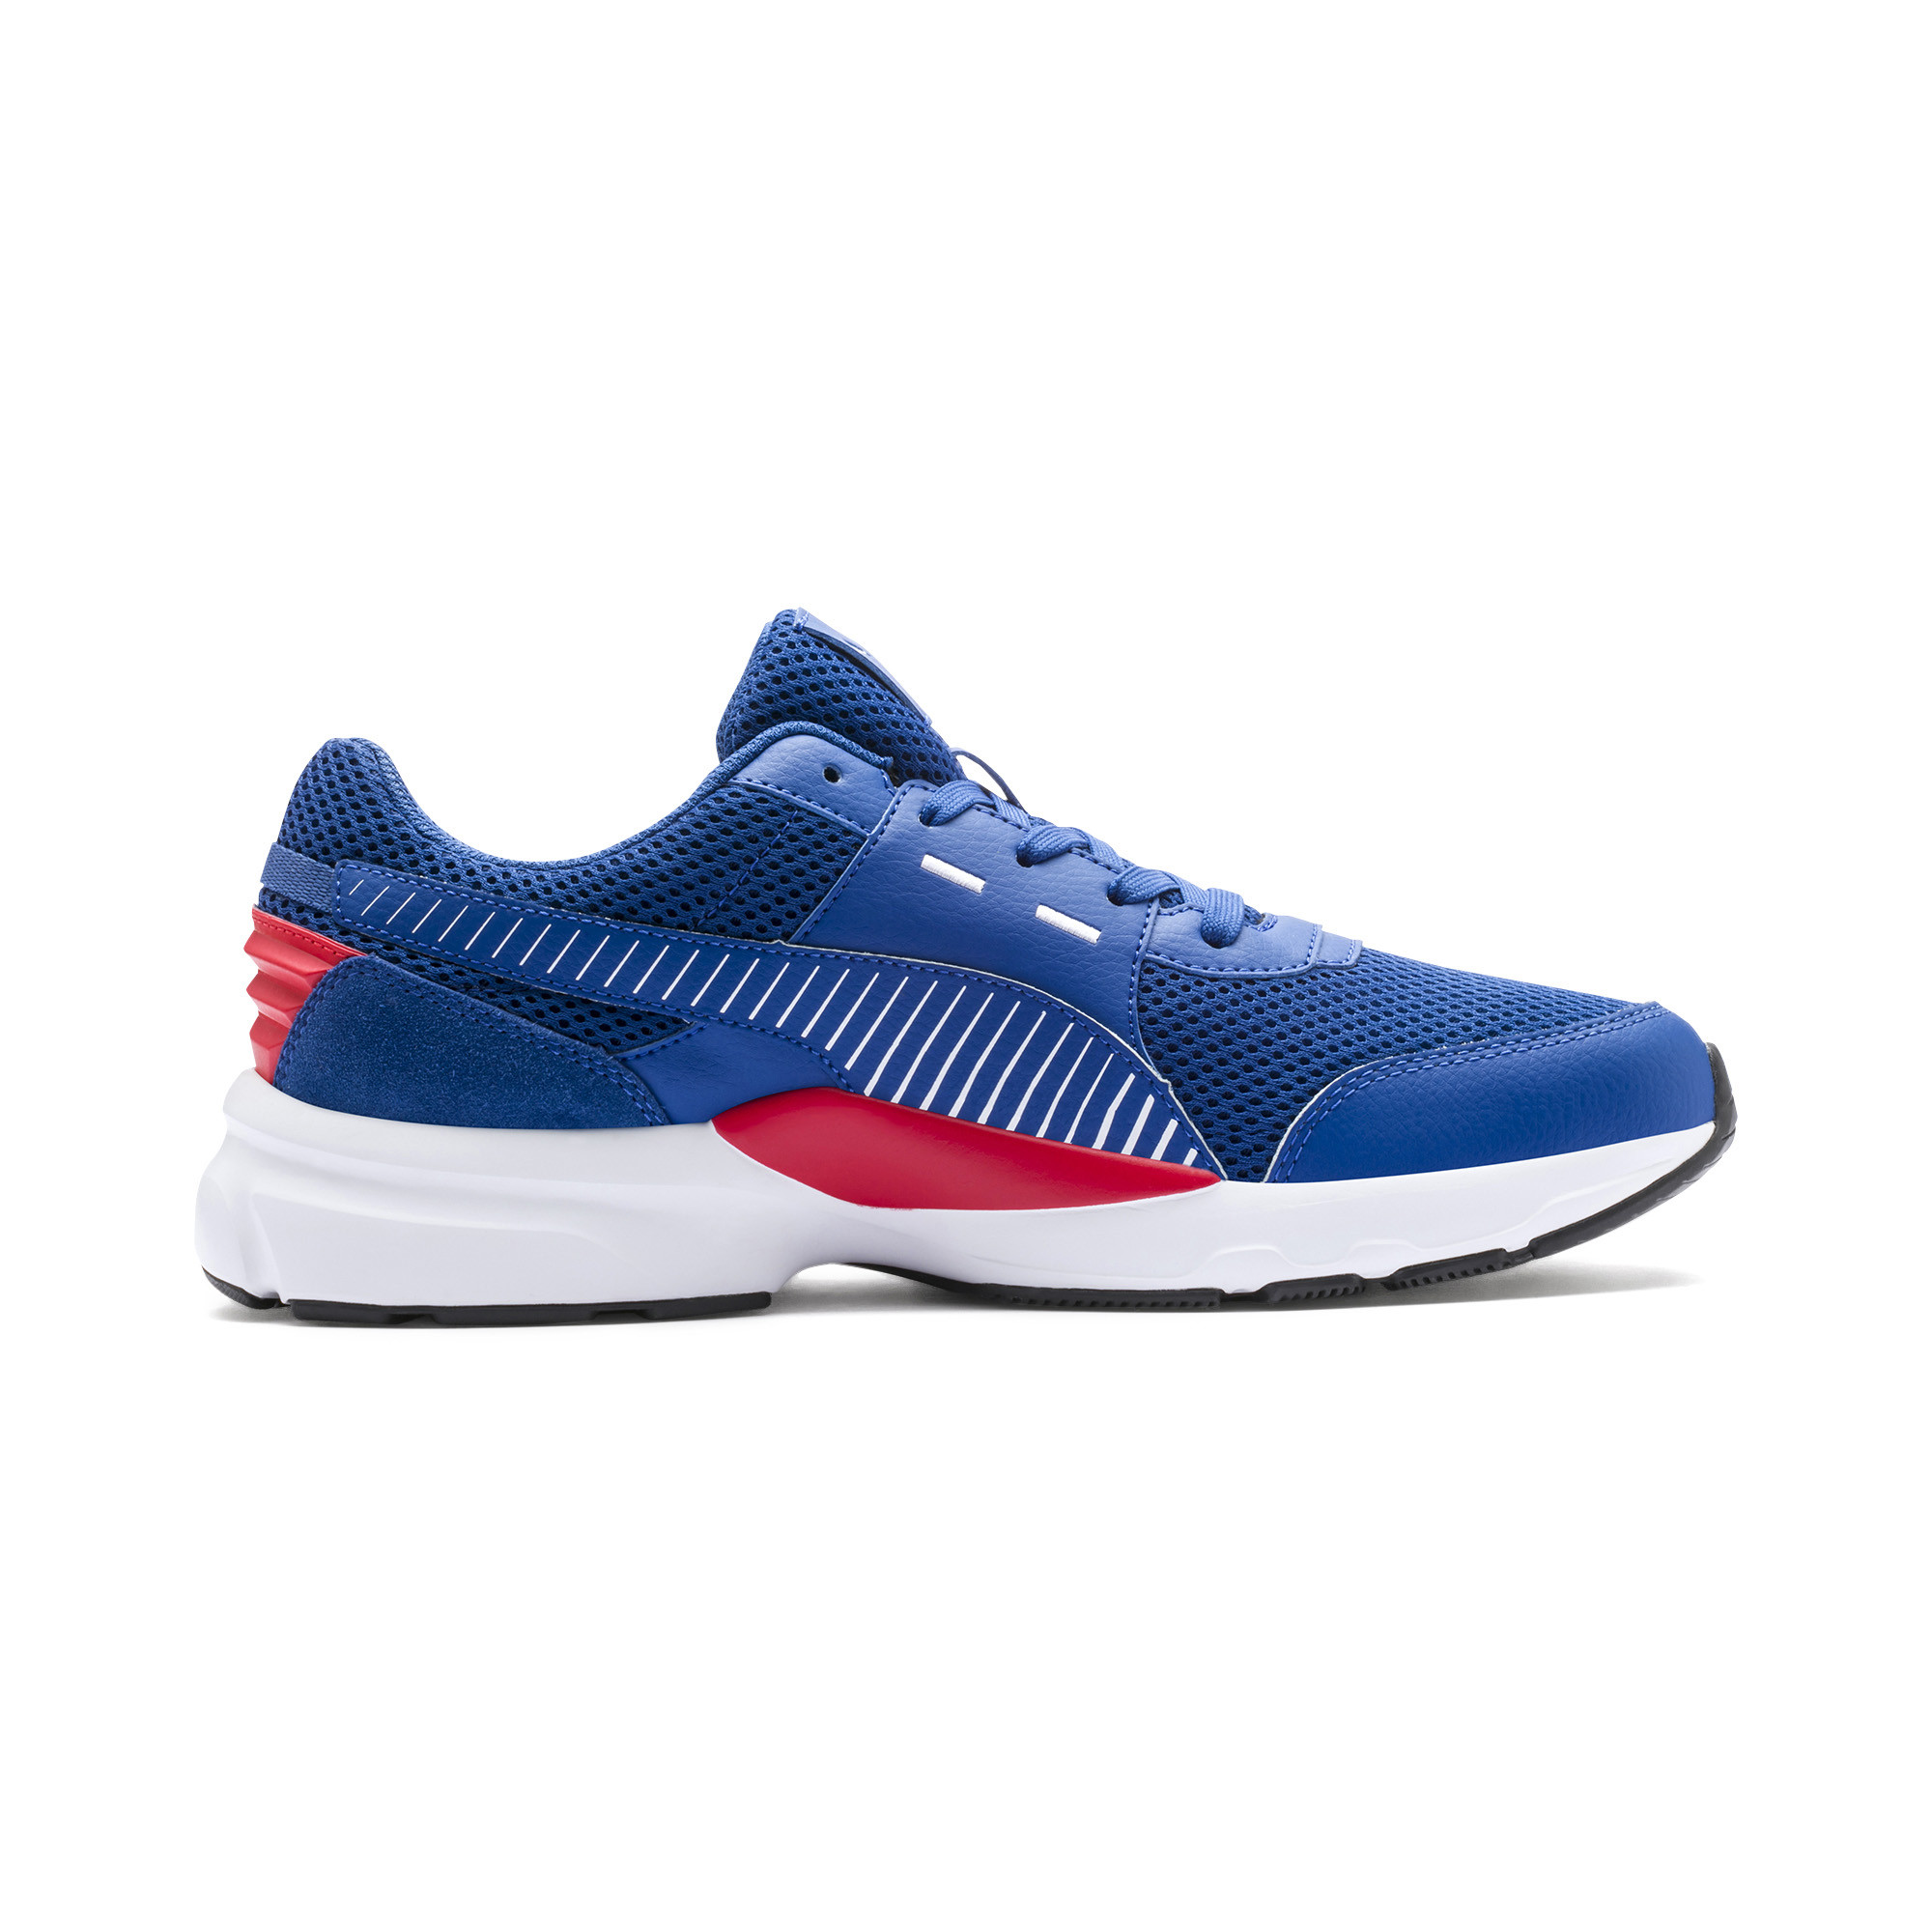 PUMA-Future-Runner-Premium-Men-039-s-Running-Shoes-Men-Shoe-Basics thumbnail 18